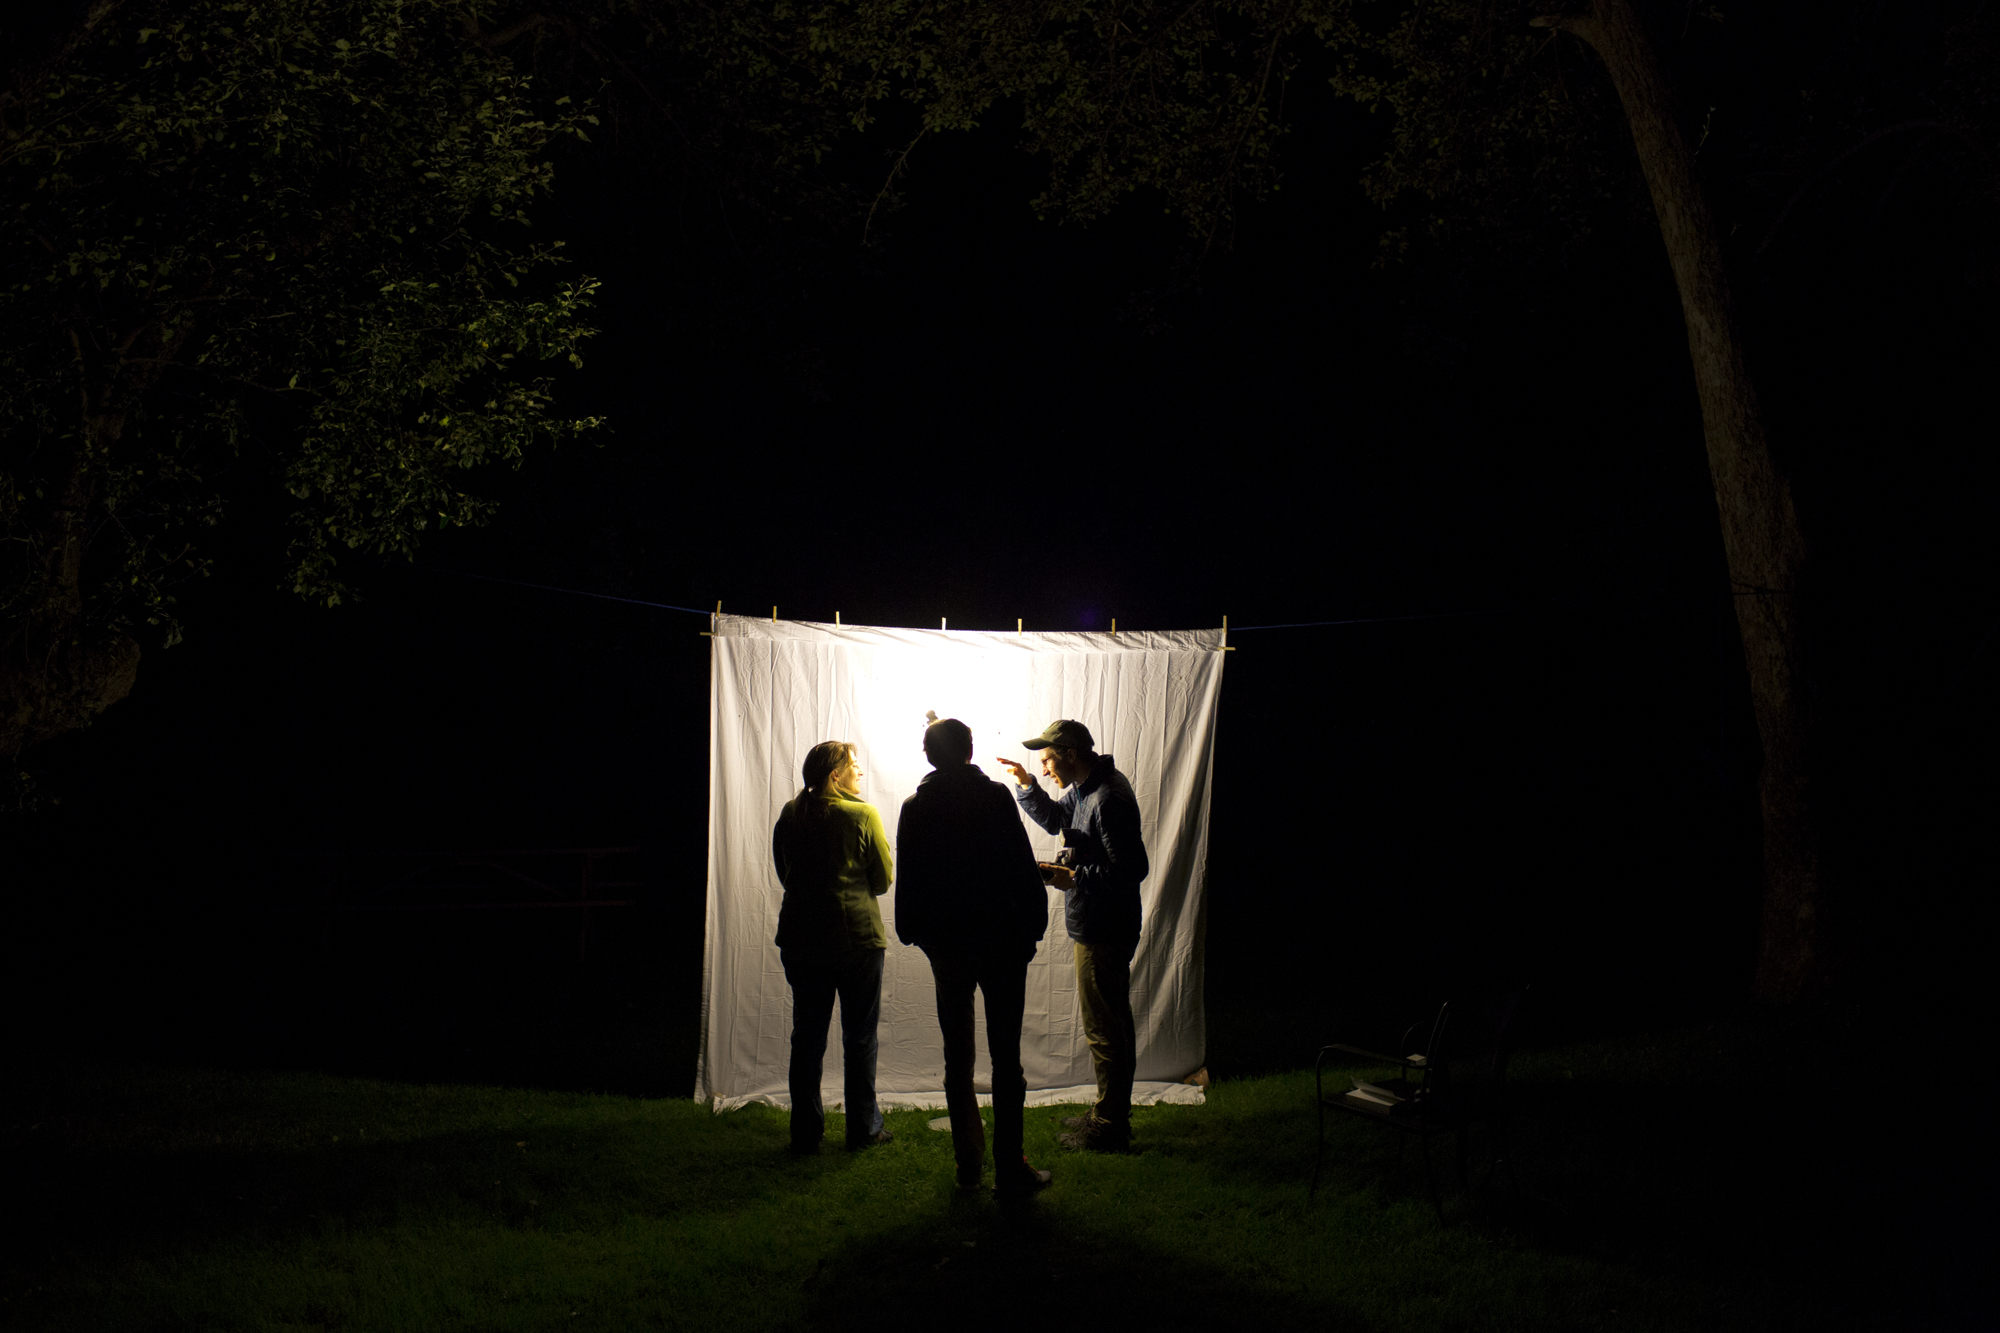 Sarah Haggerty, left, Fyn Kind, and Doug Hitchcox look for moths late in the evening at Gilsland Farm Audubon Center in Falmouth, Maine on July 26.